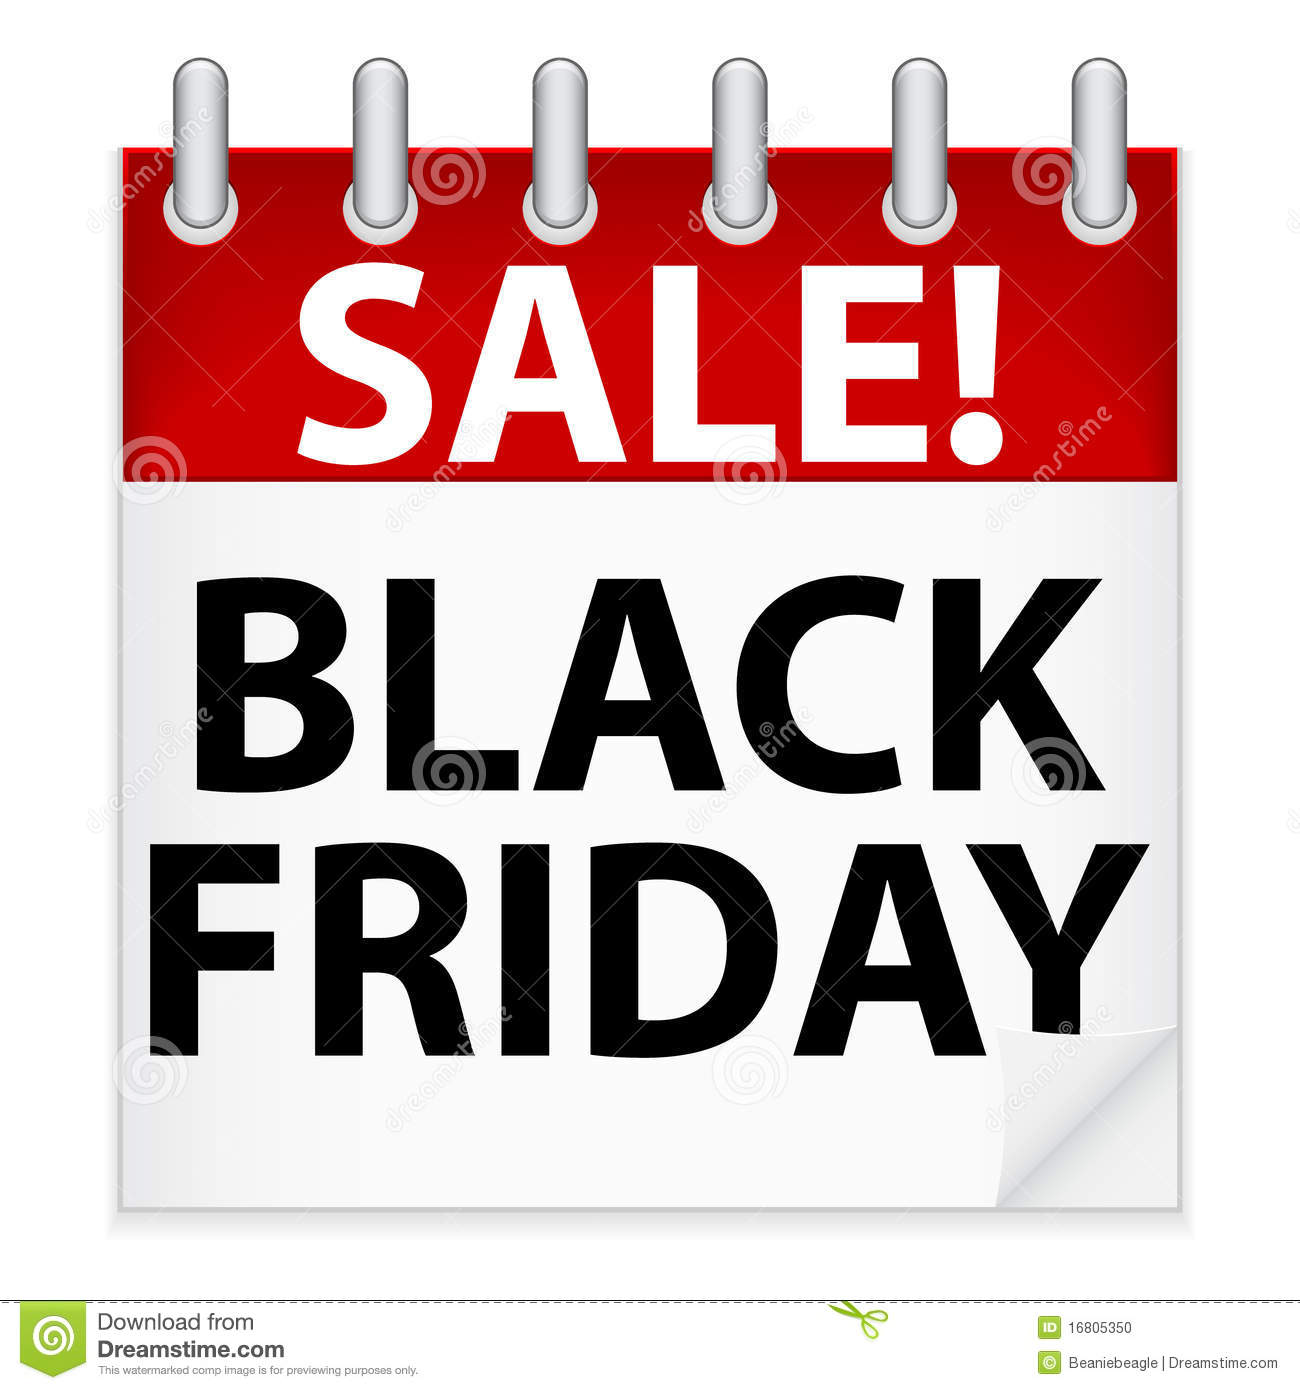 Back Friday The Best Black Friday And Cyber Monday Mountain Bike Deals